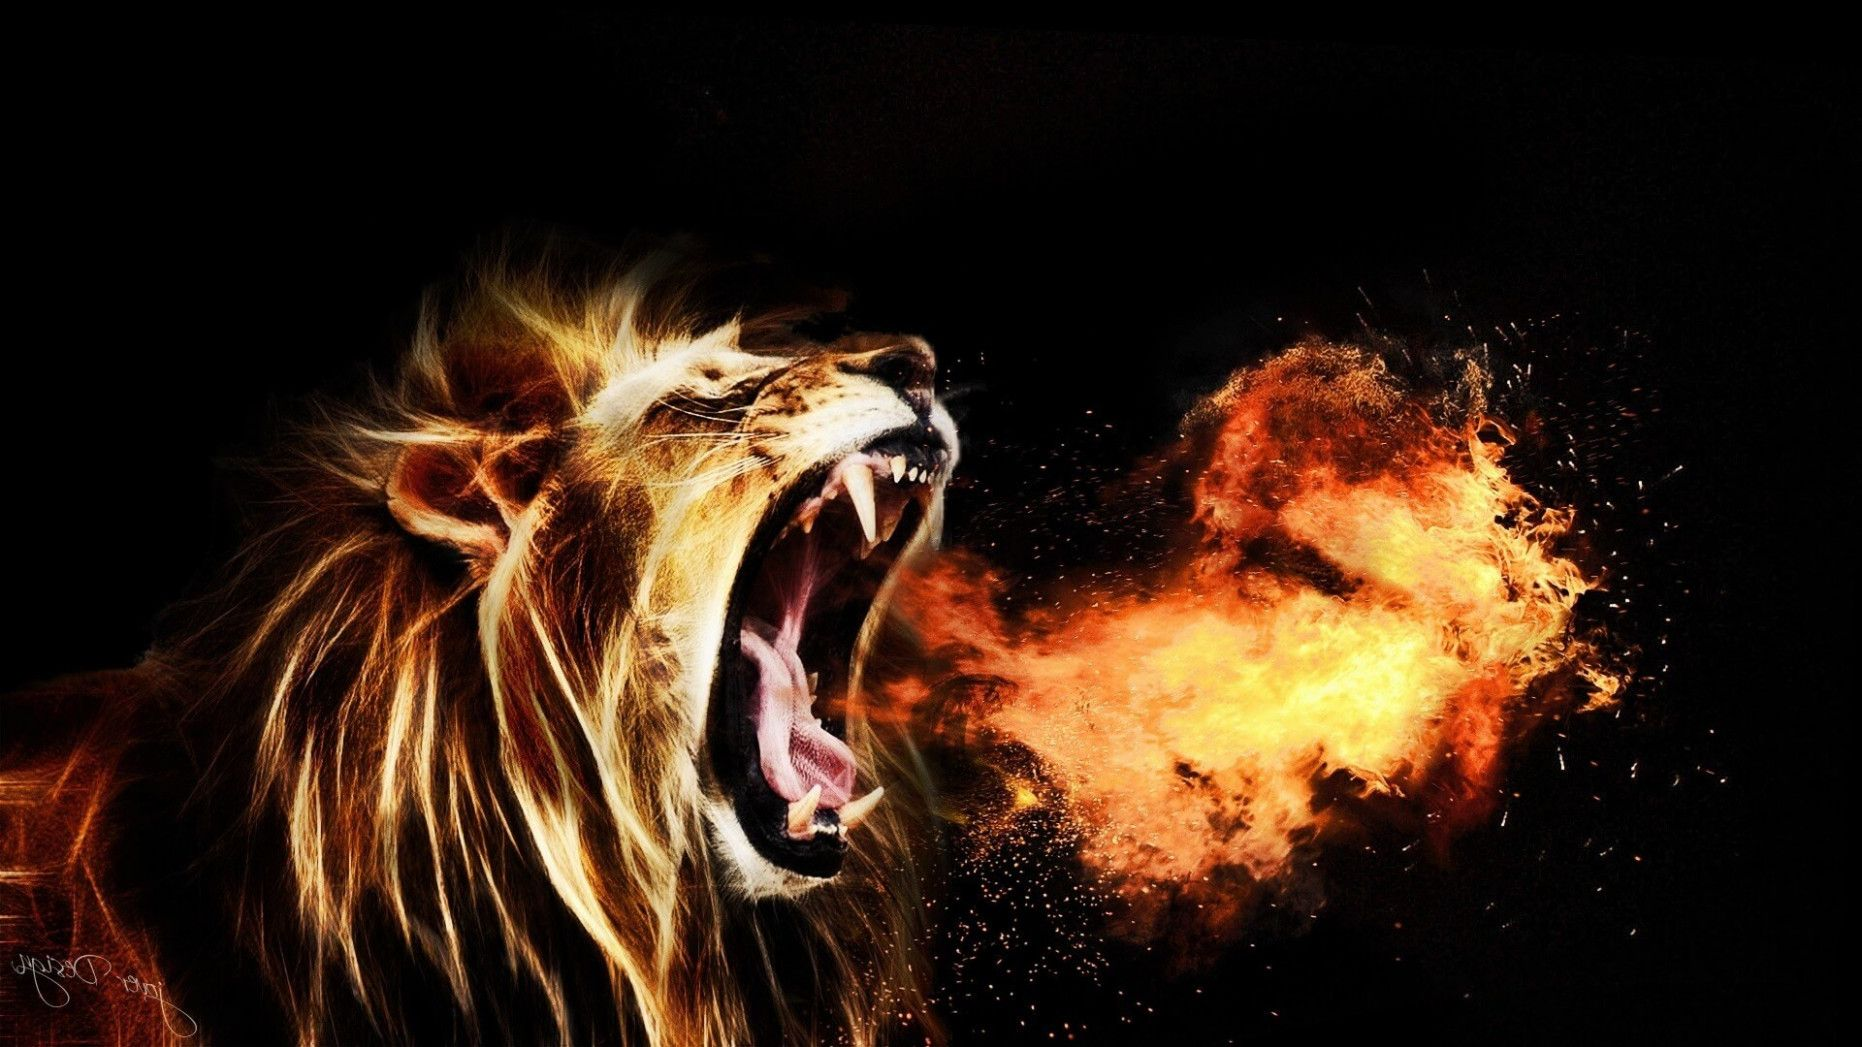 1862x1047 Fire Lion Wallpapers -① – amazing lion wallpapers hd | Amazing ...